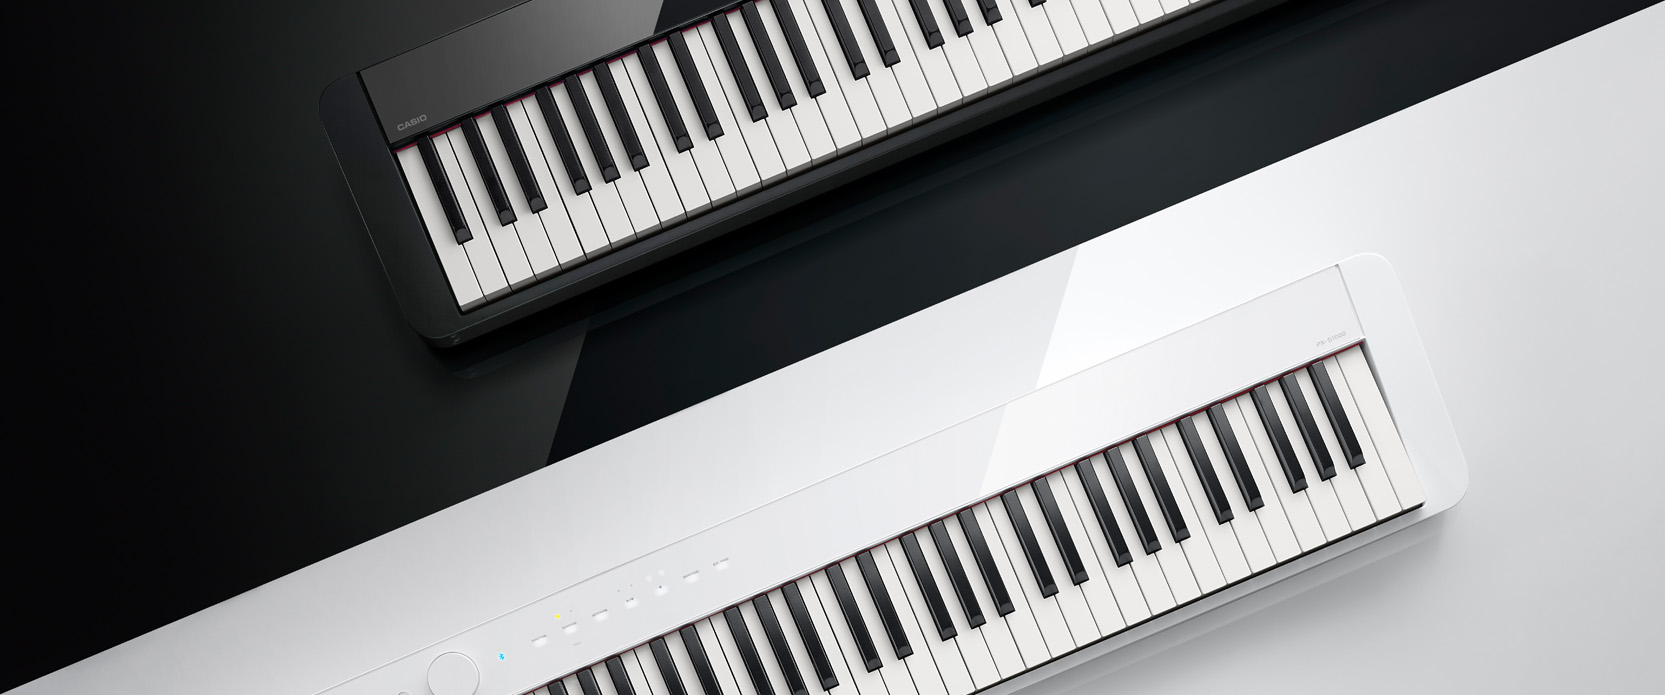 portable - DIGITAL PIANOSSLIM. STYLISH. SMART.